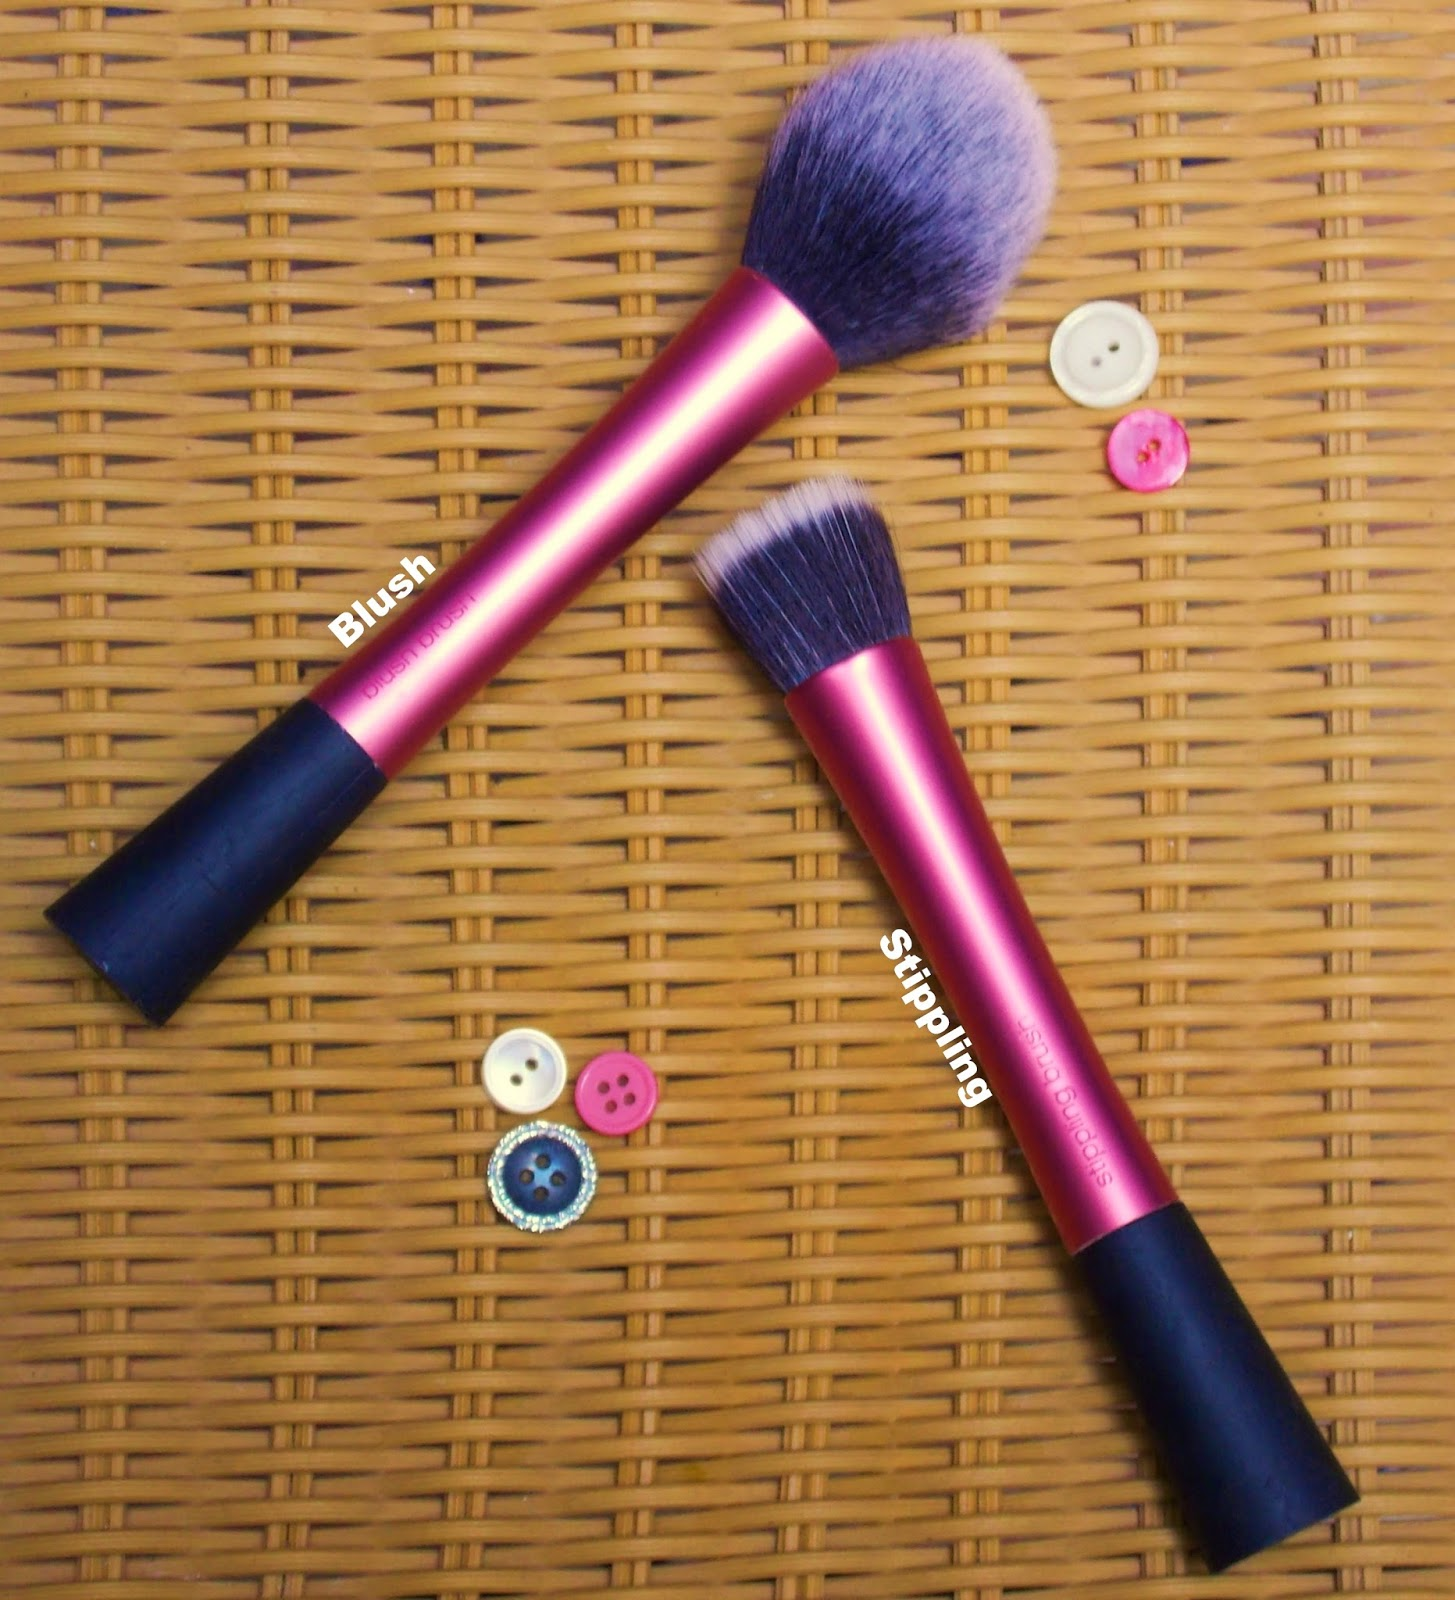 Real Techniques Brushes, Sam Chapman, Pixiwoo,Beauty, correct tools, daily make up brushes, how to create a flawless base, make up brush collection, using make up brushes, why do I need make up brushes,